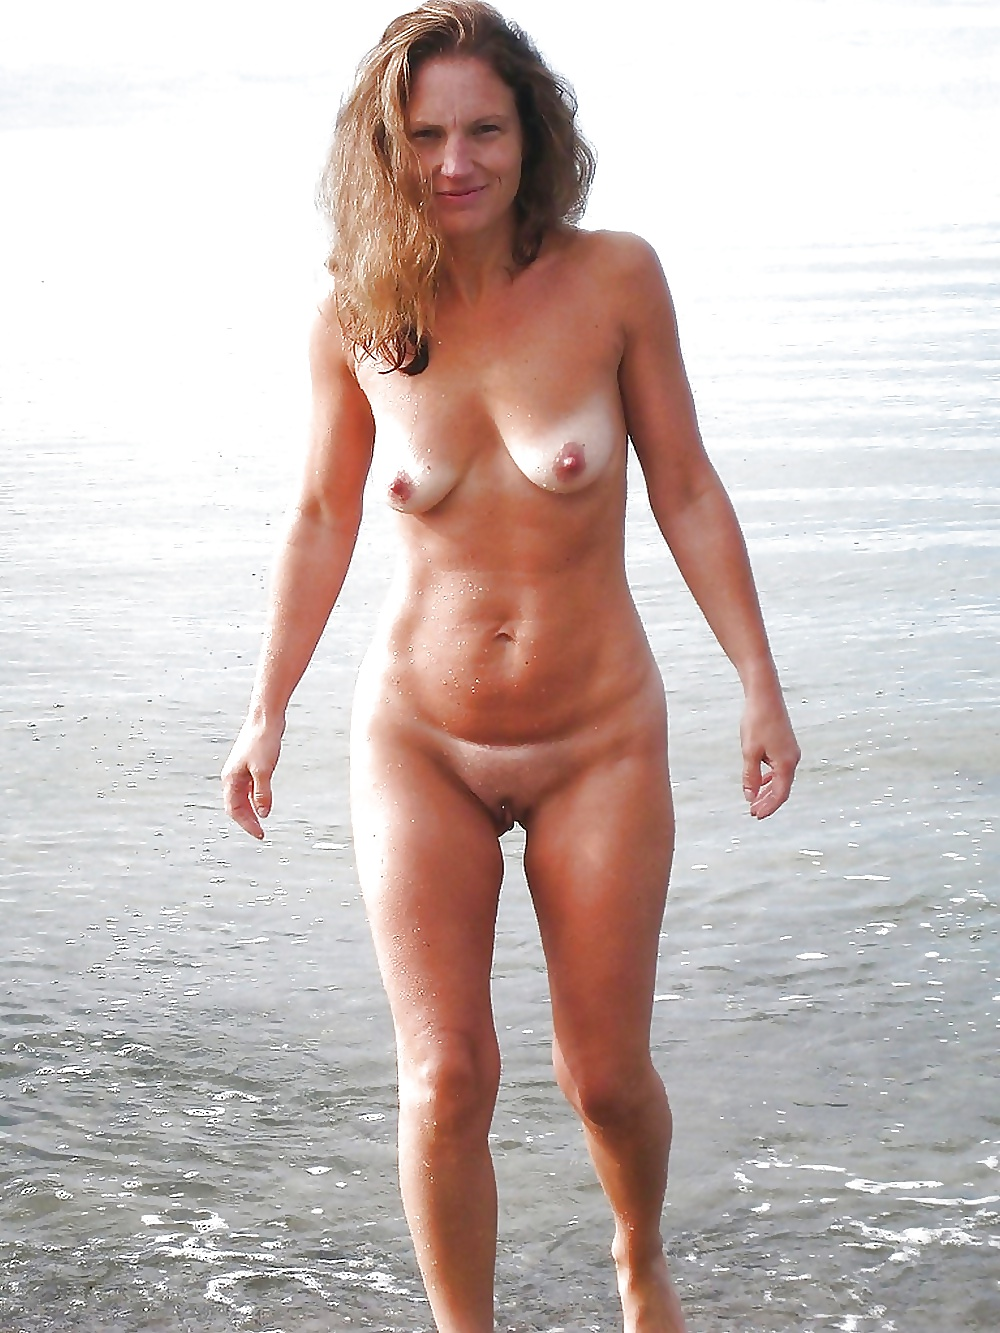 Warm Nude Mature At The Beach Images